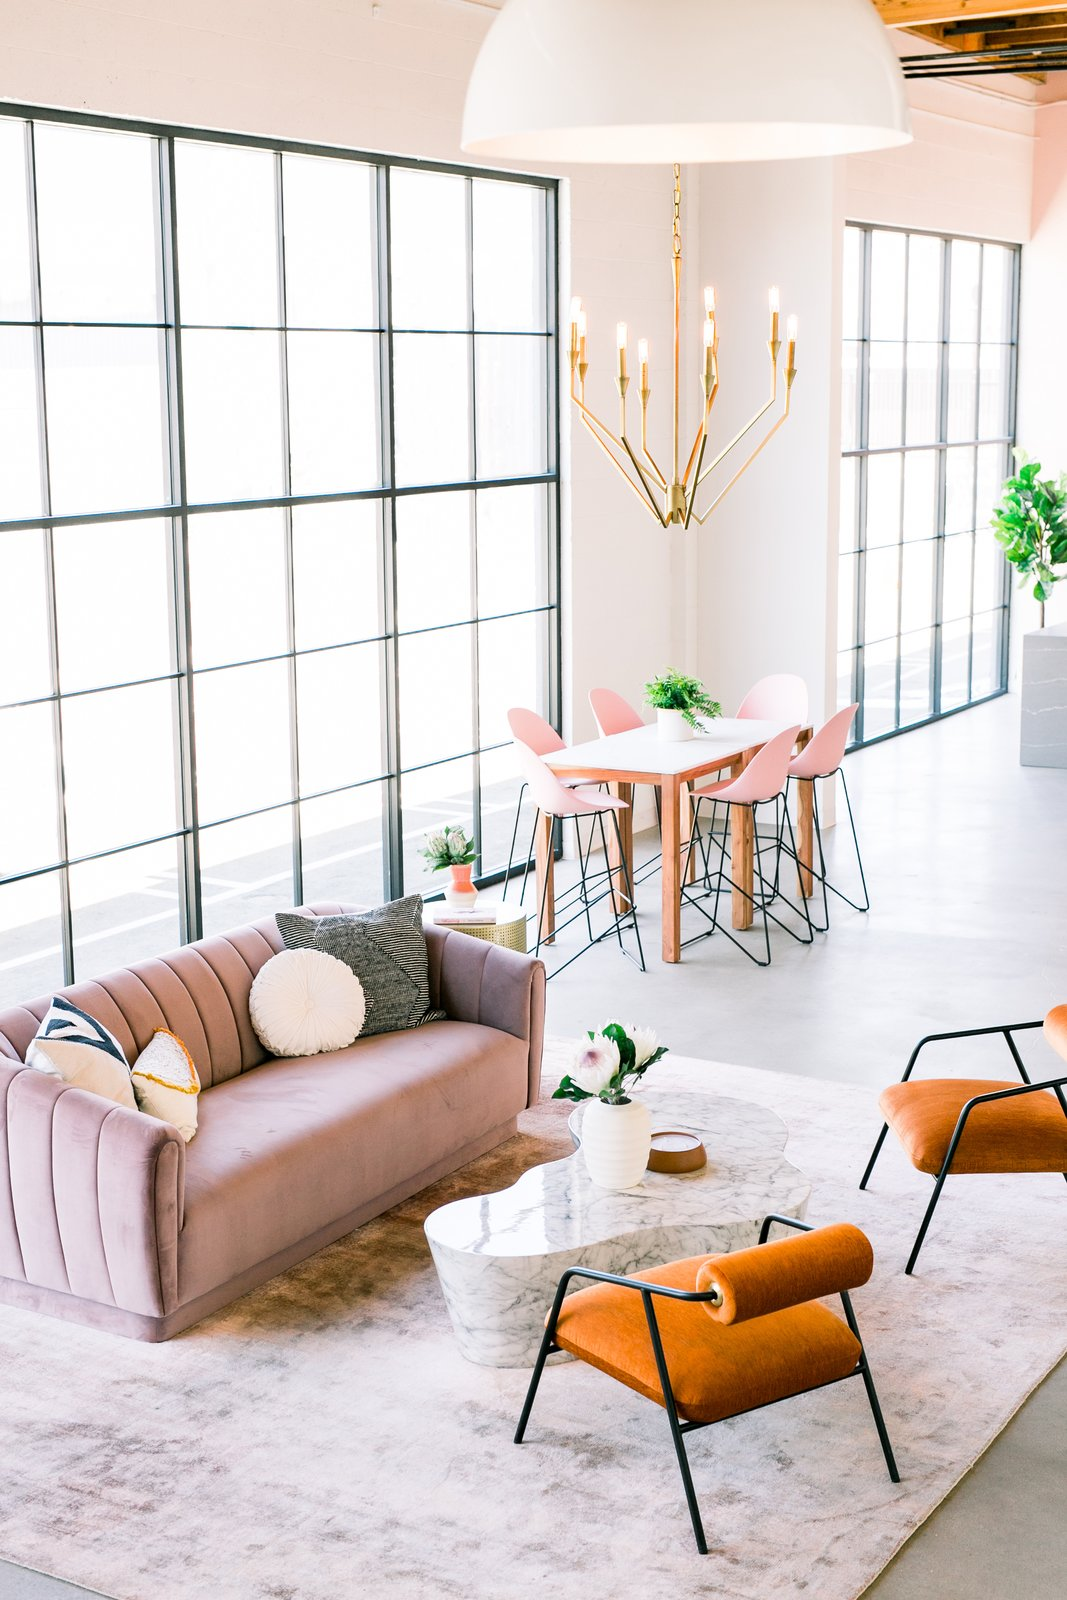 Windows, Picture Window Type, and Metal Create & Cultivate Clubhouse-Ginny MacDonald  Photo 3 of 10 in The Create & Cultivate Clubhouse Takes Millennial Pink to the Next Level